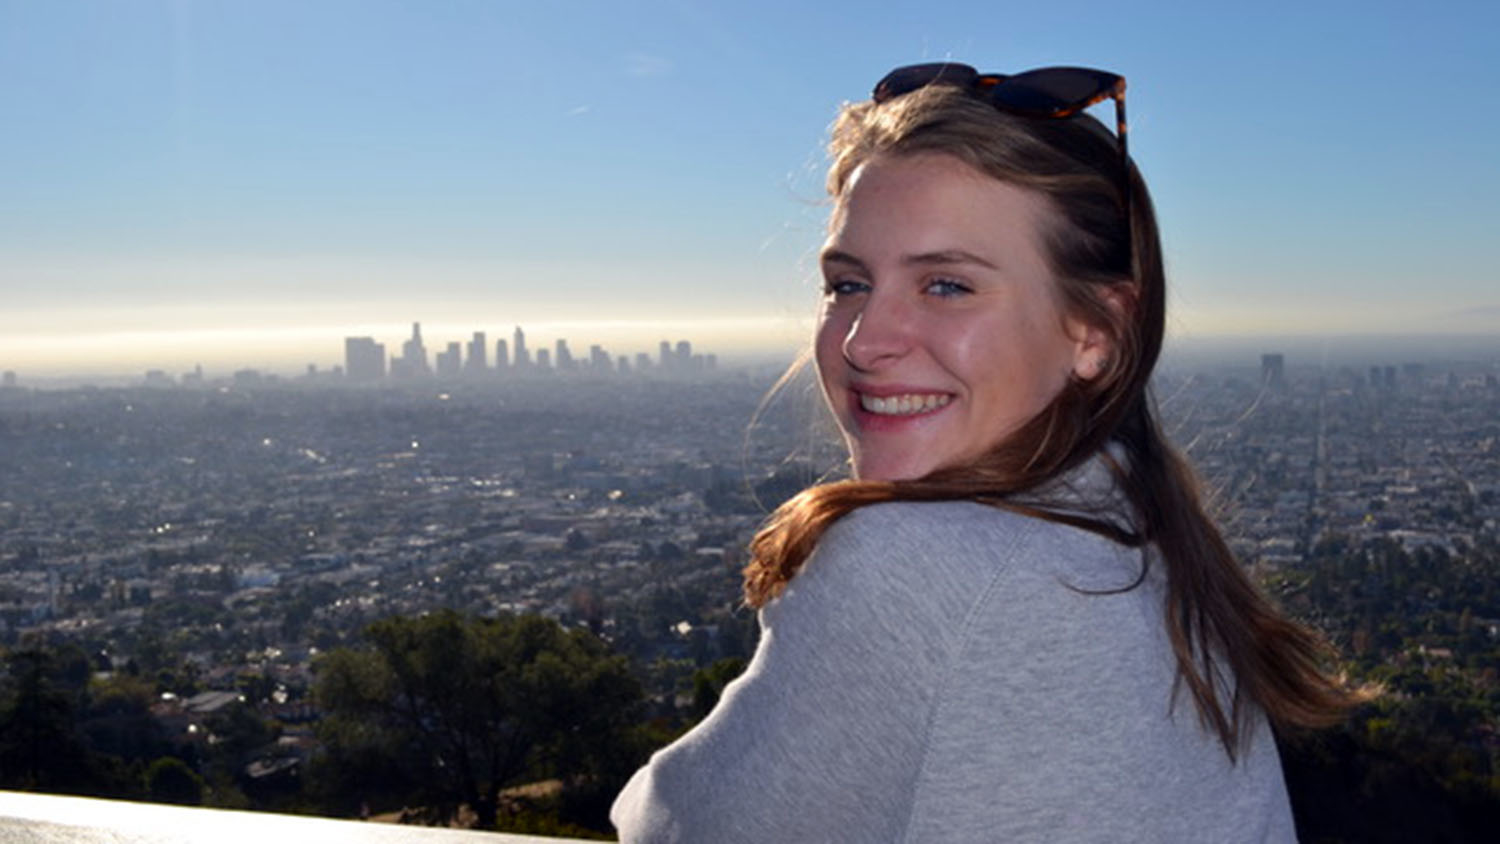 A high school girl looks back over her shoulder with a skyline in the background.